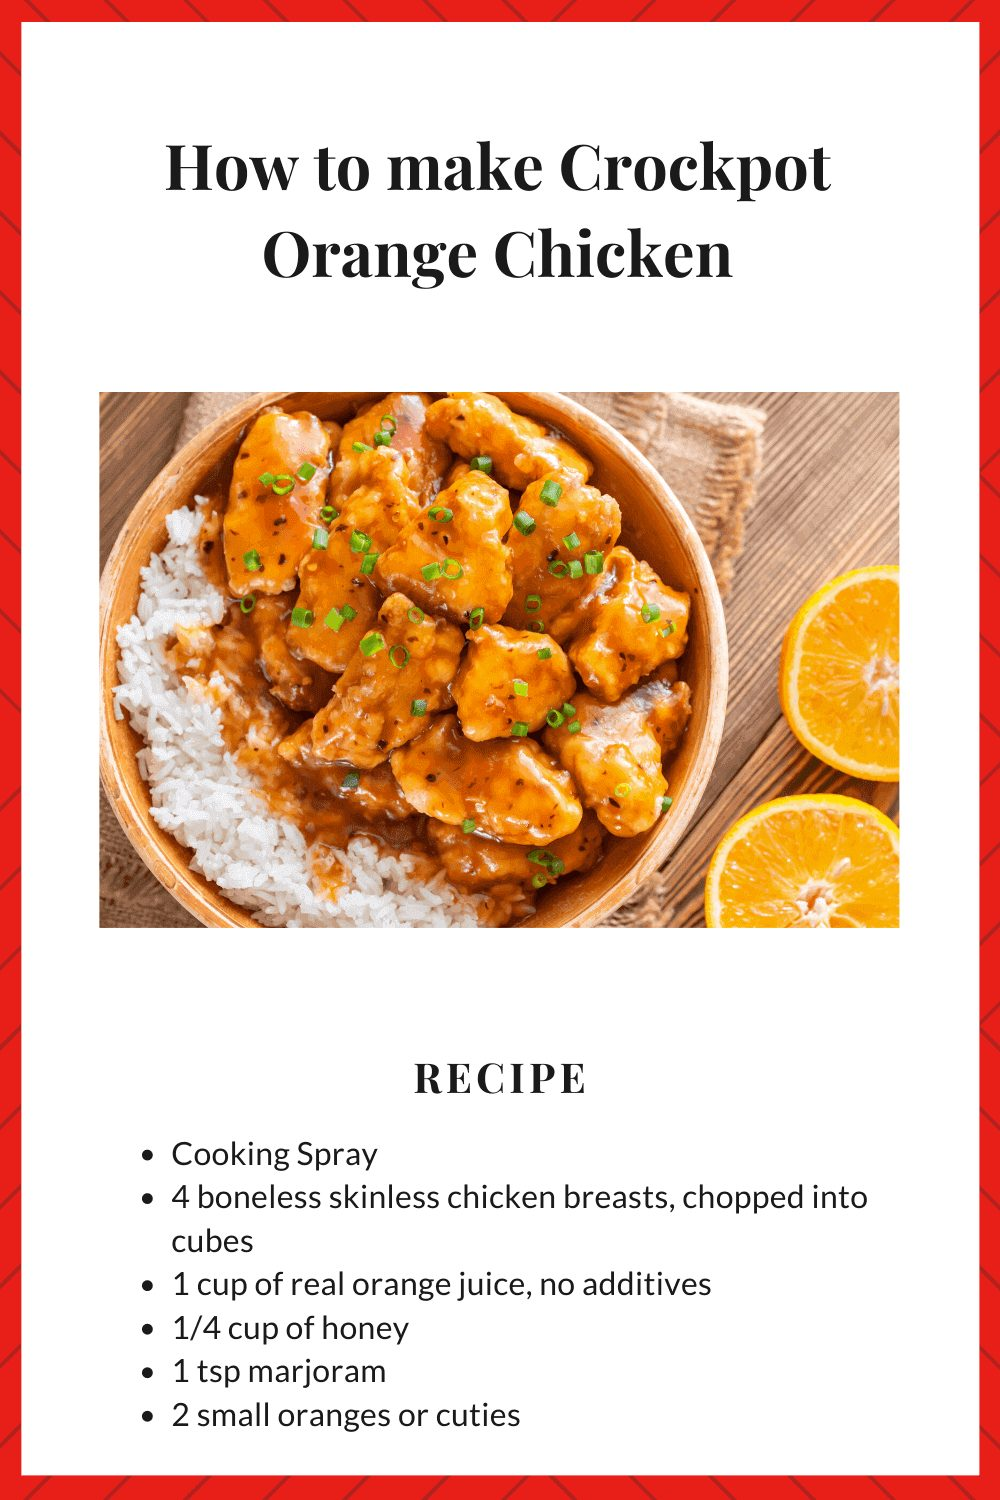 crockpot orange chicken ingredients